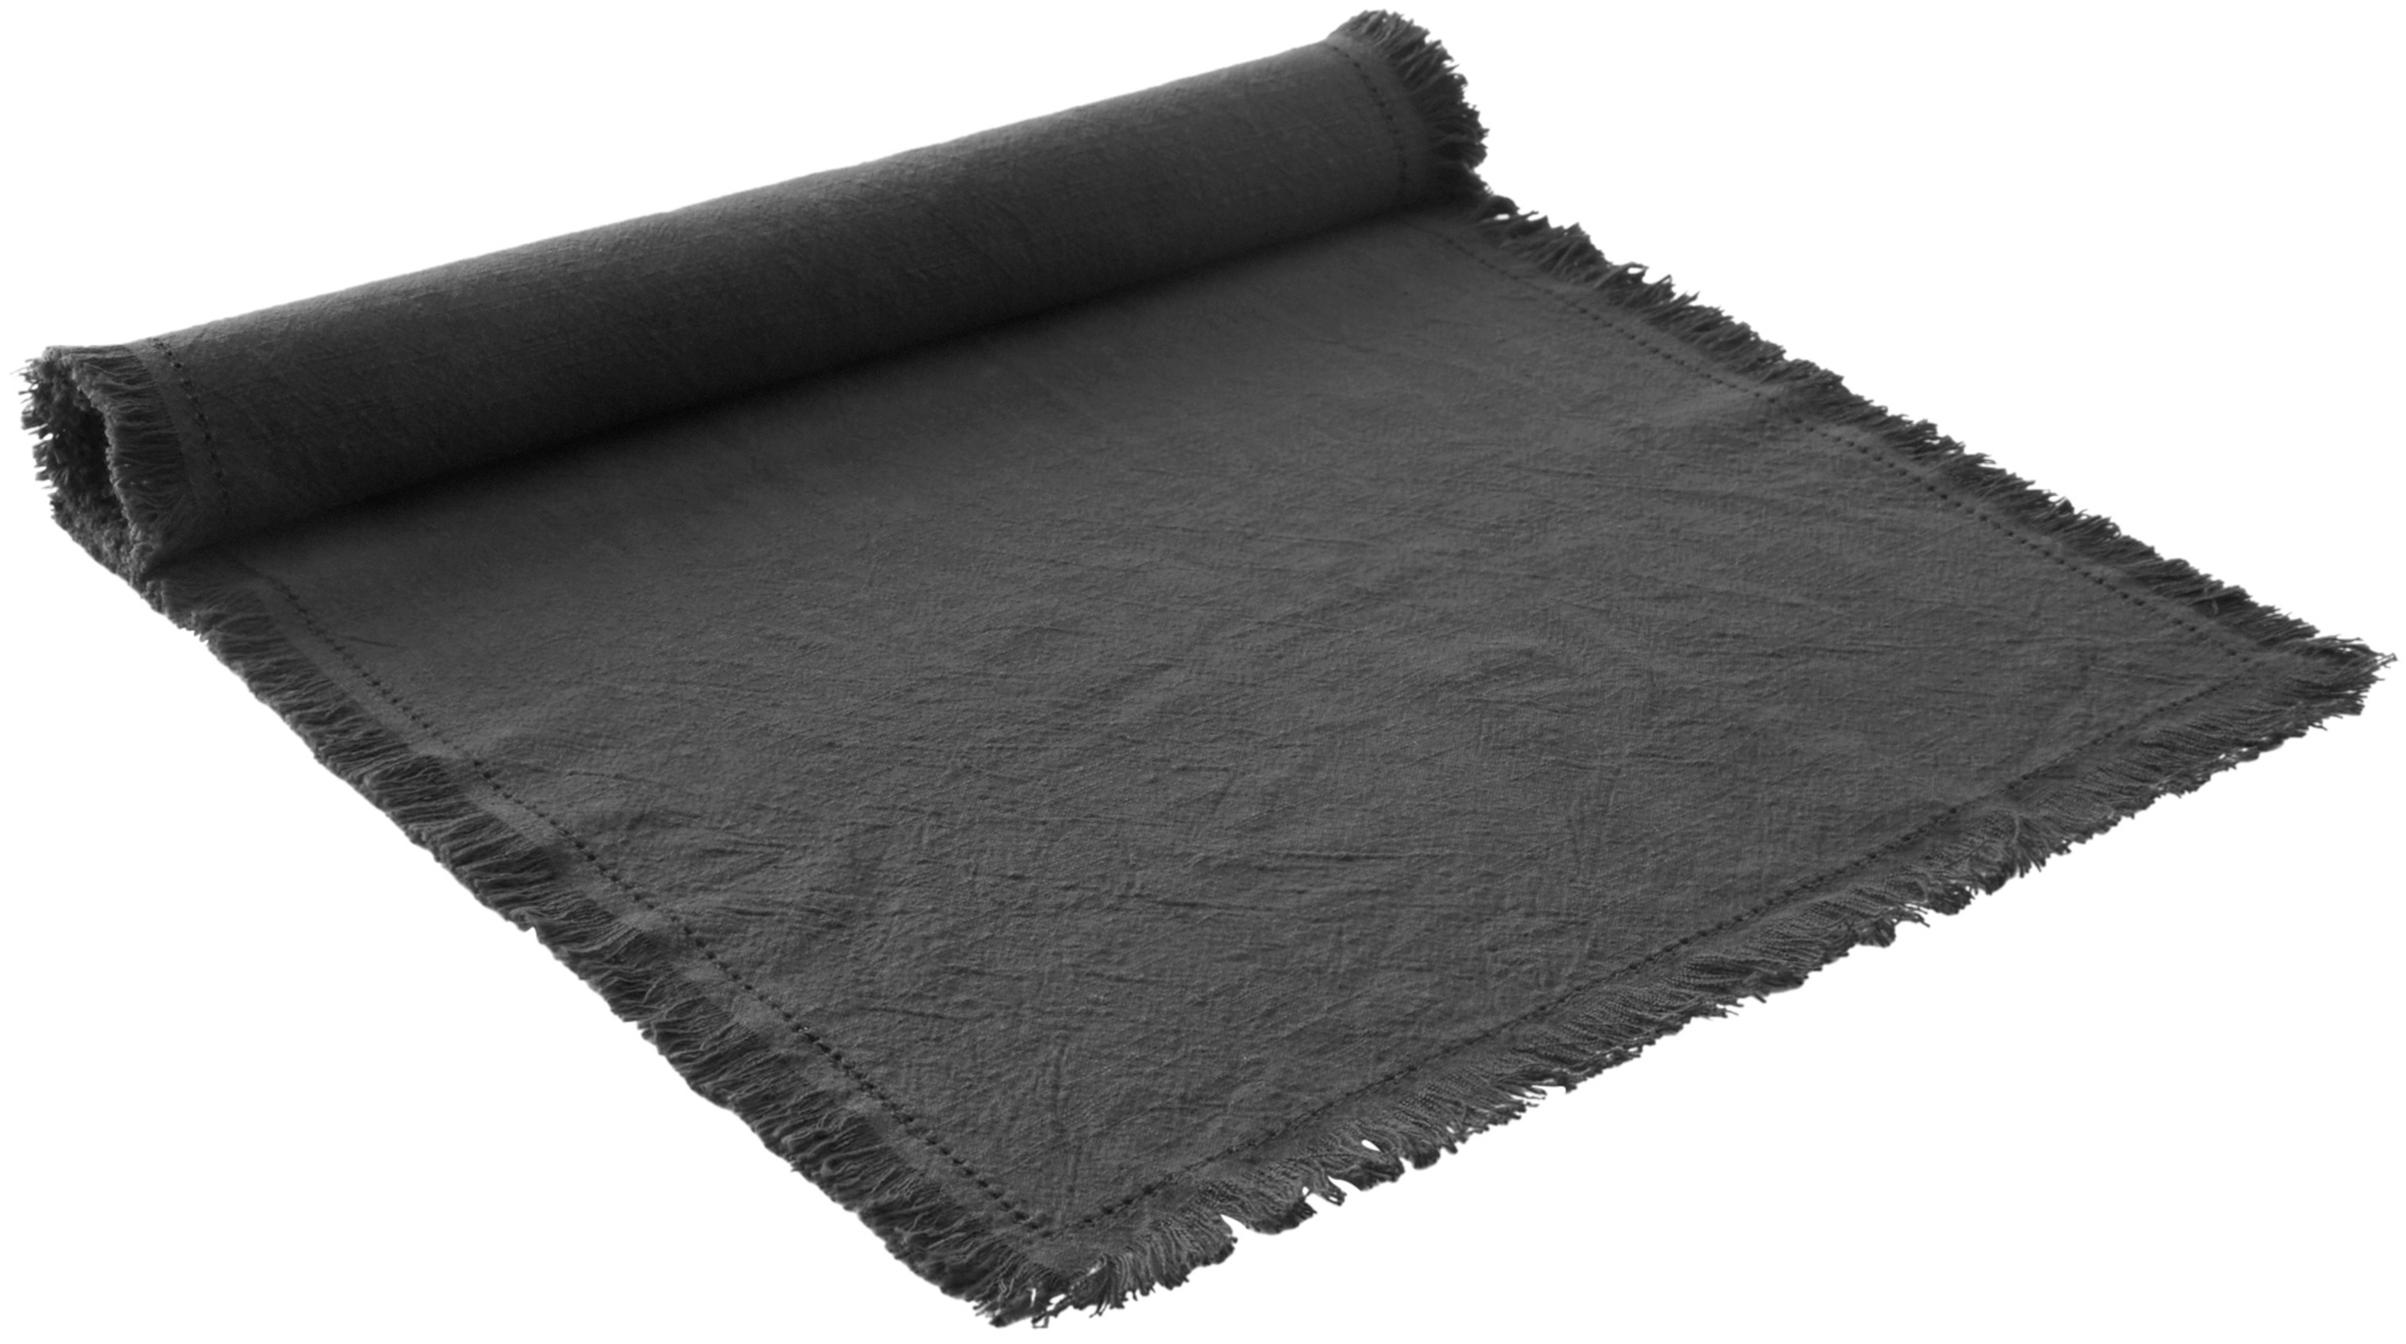 Runner Hilma, 100% cotone, Antracite, Larg. 40 x Lung. 140 cm